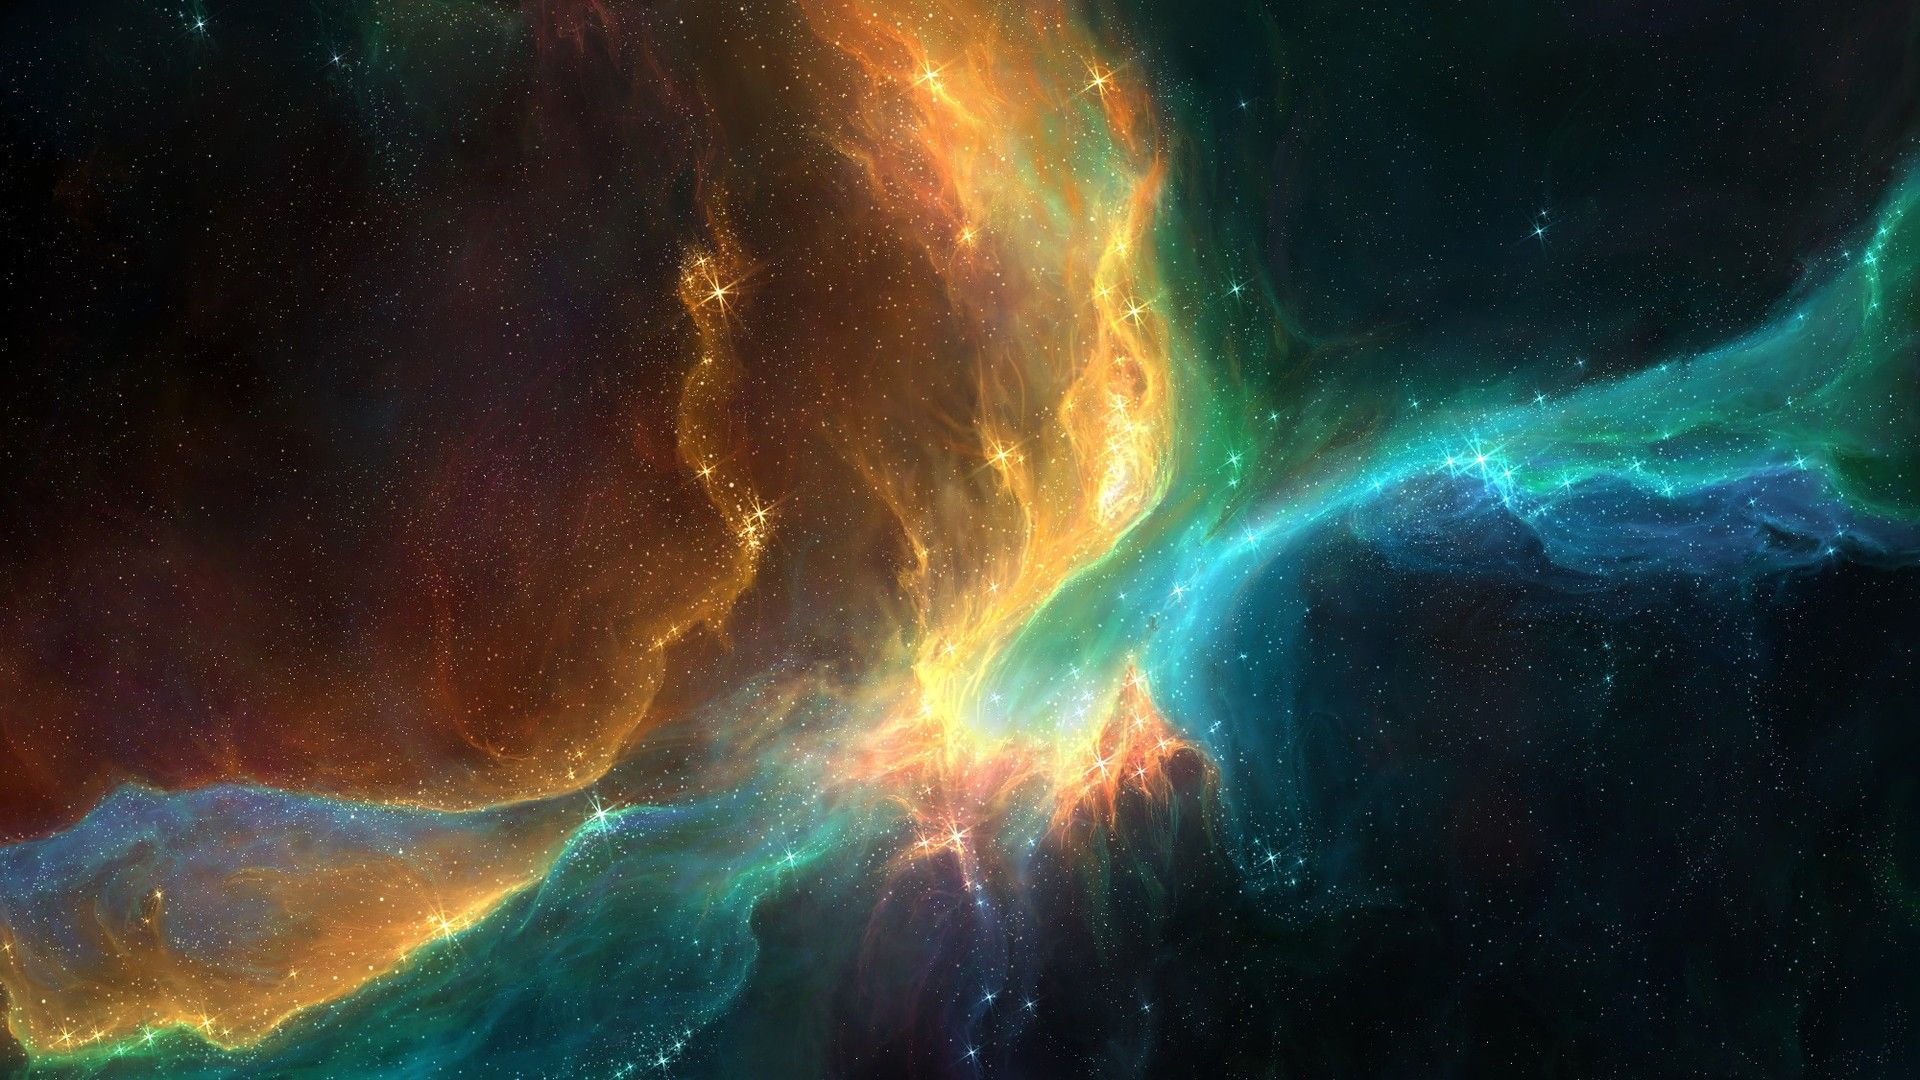 Outer Space Nebula Wallpaper Widescreen 2 HD Wallpapers